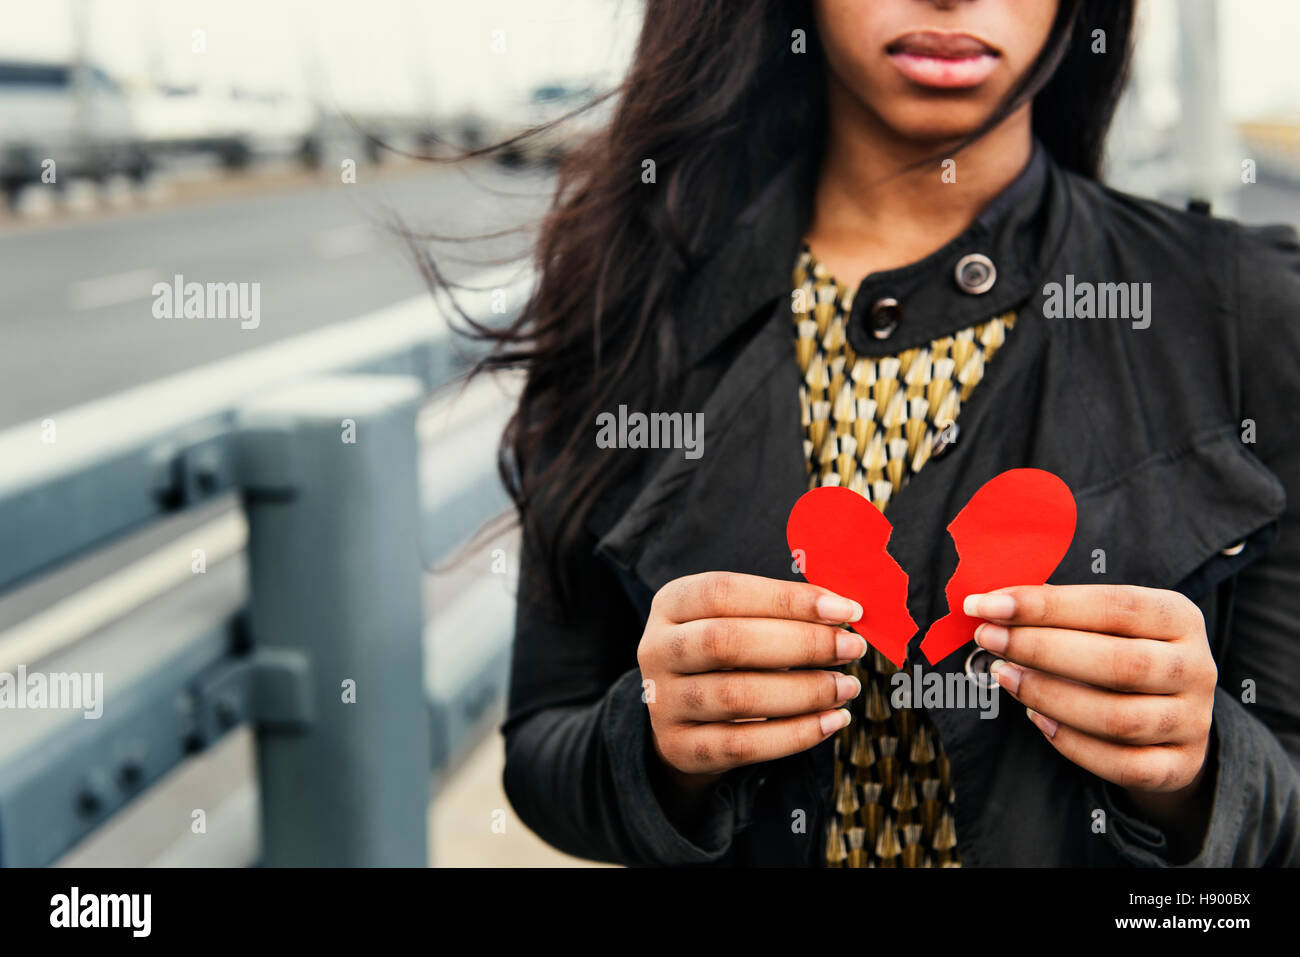 African Woman Broken Heart Disappointed Sad Concept - Stock Image